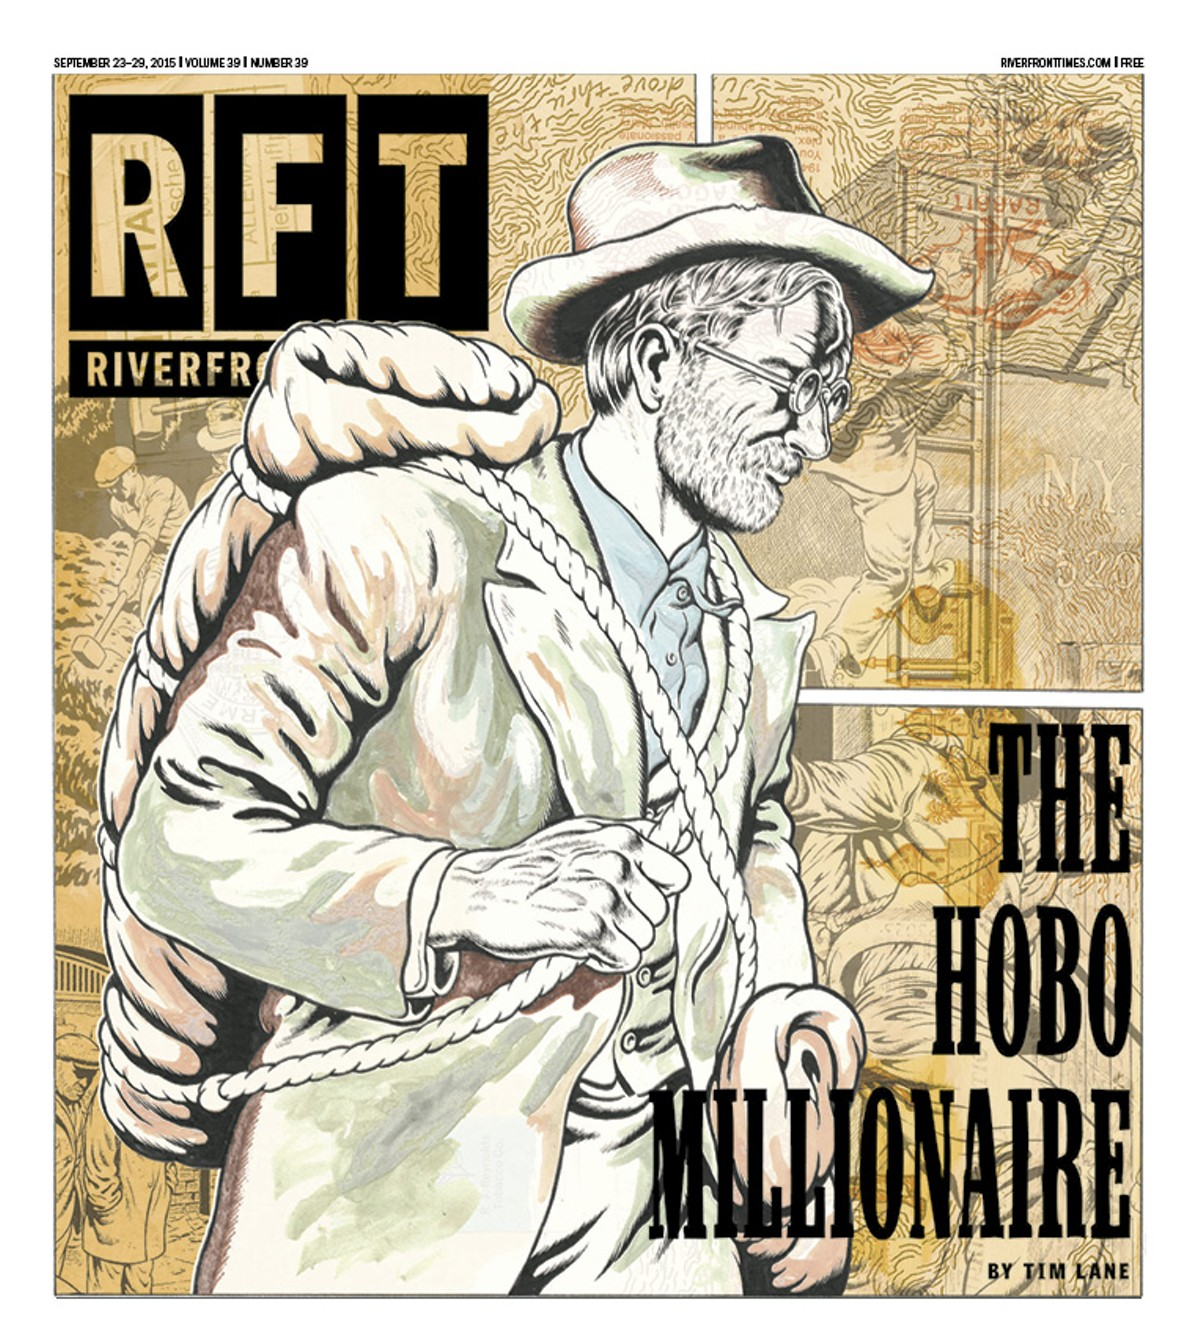 The cover of the September 24, 2015, Riverfront Times.